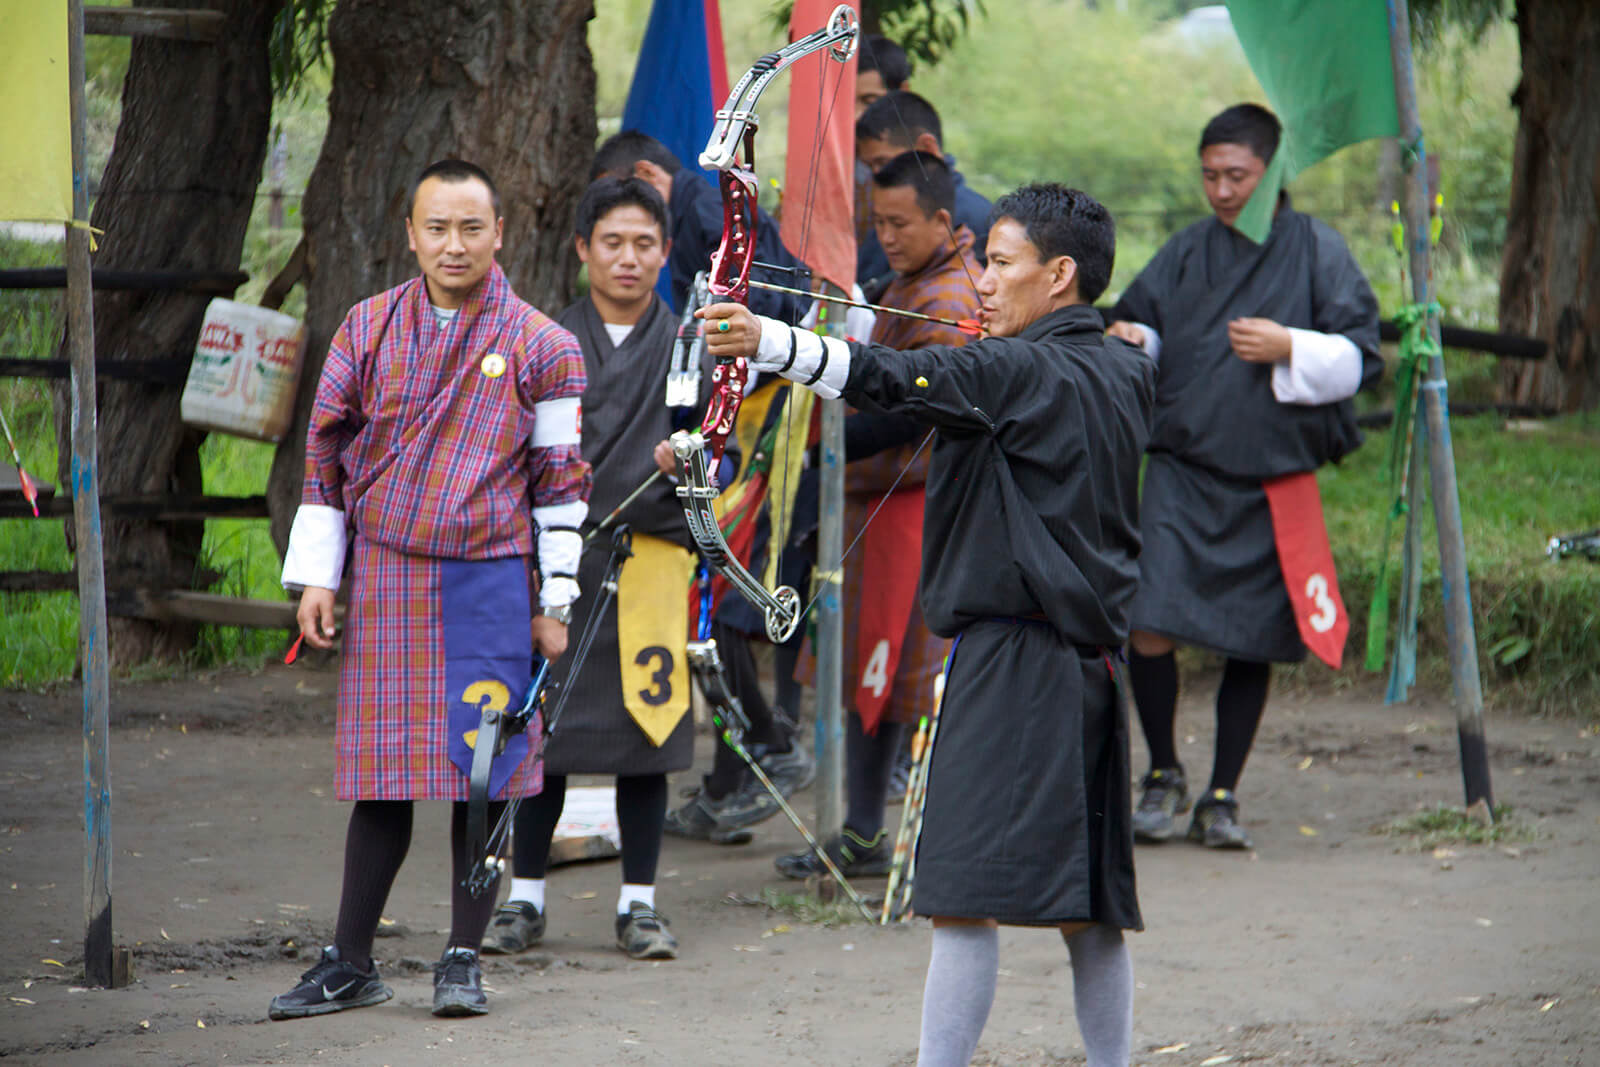 For an offbeat Bhutan experience be sure to visit an archery competition